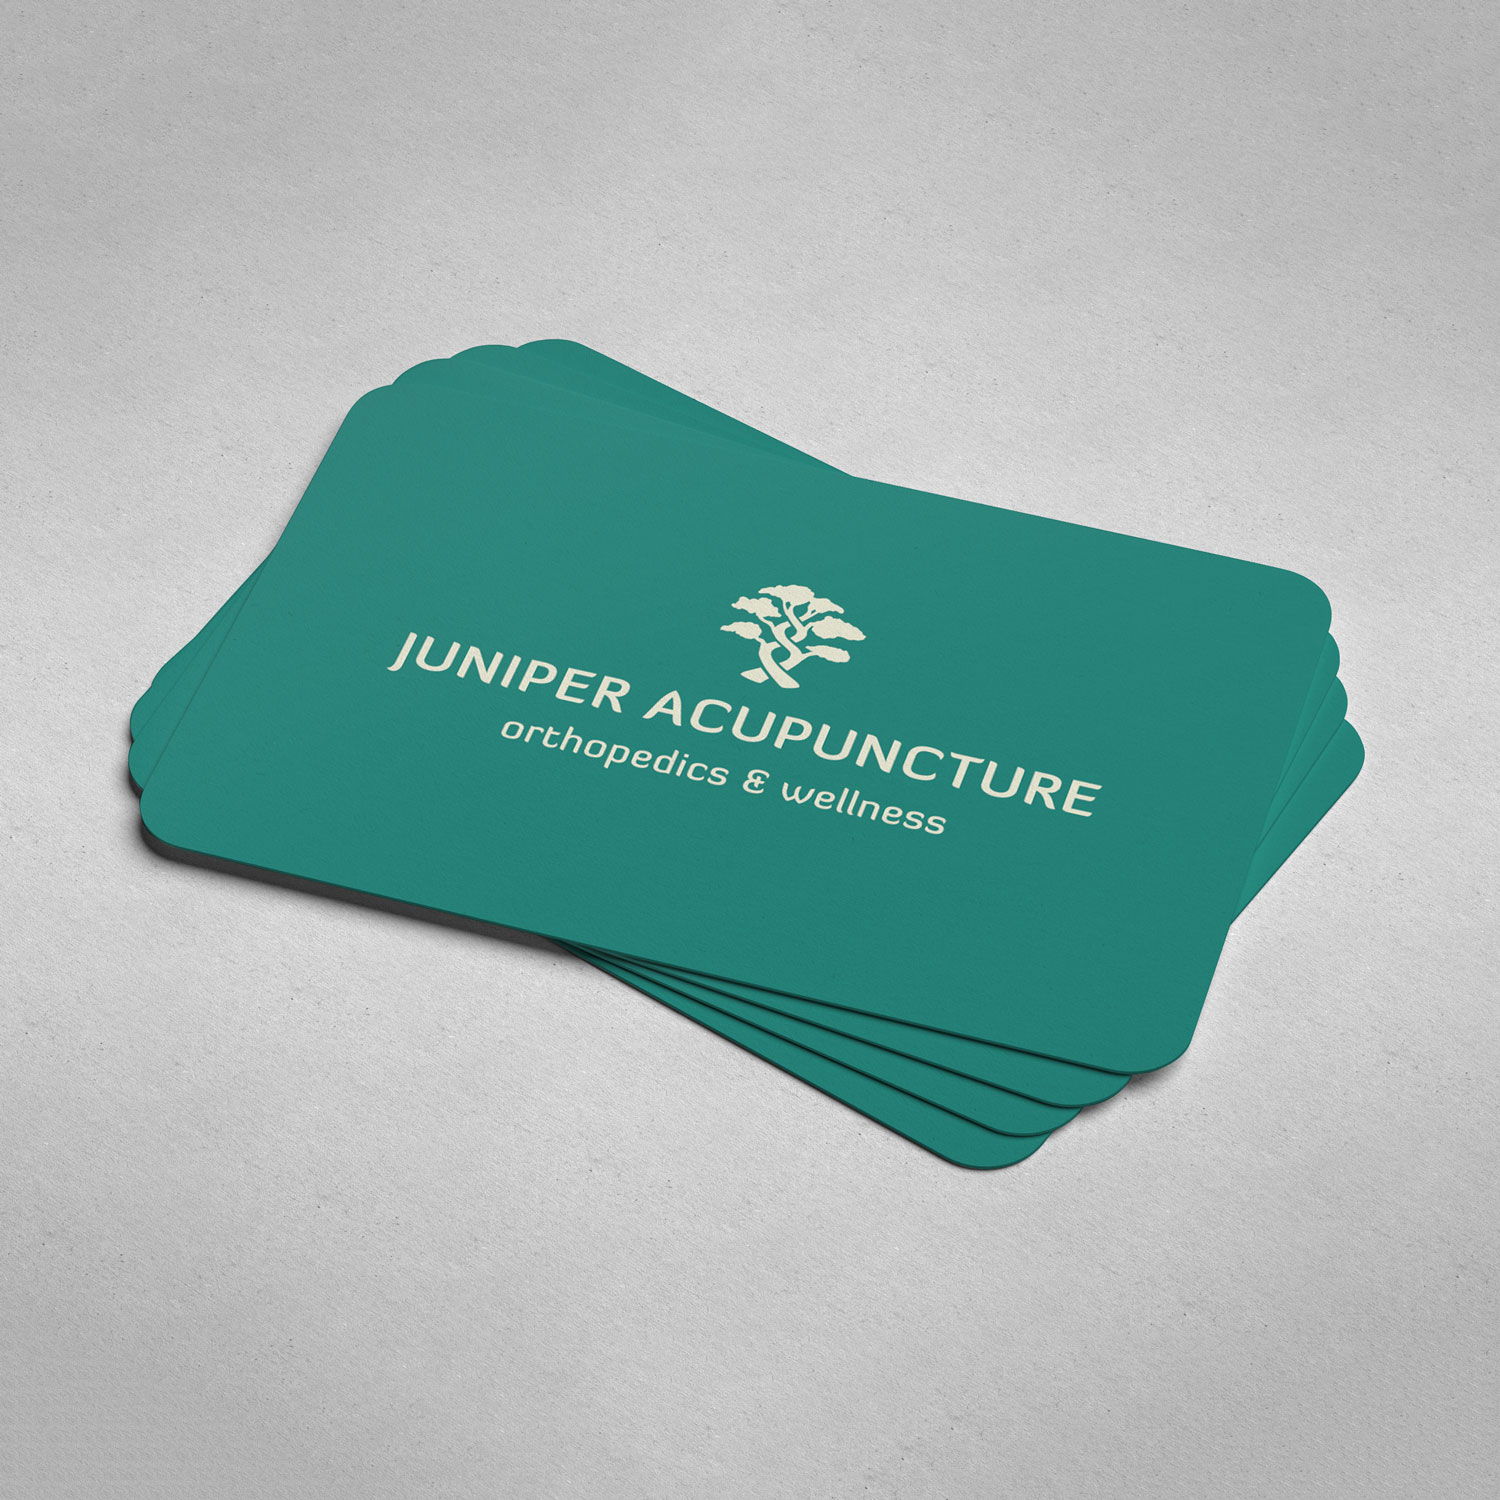 juniper-business-cards-mockup.jpg